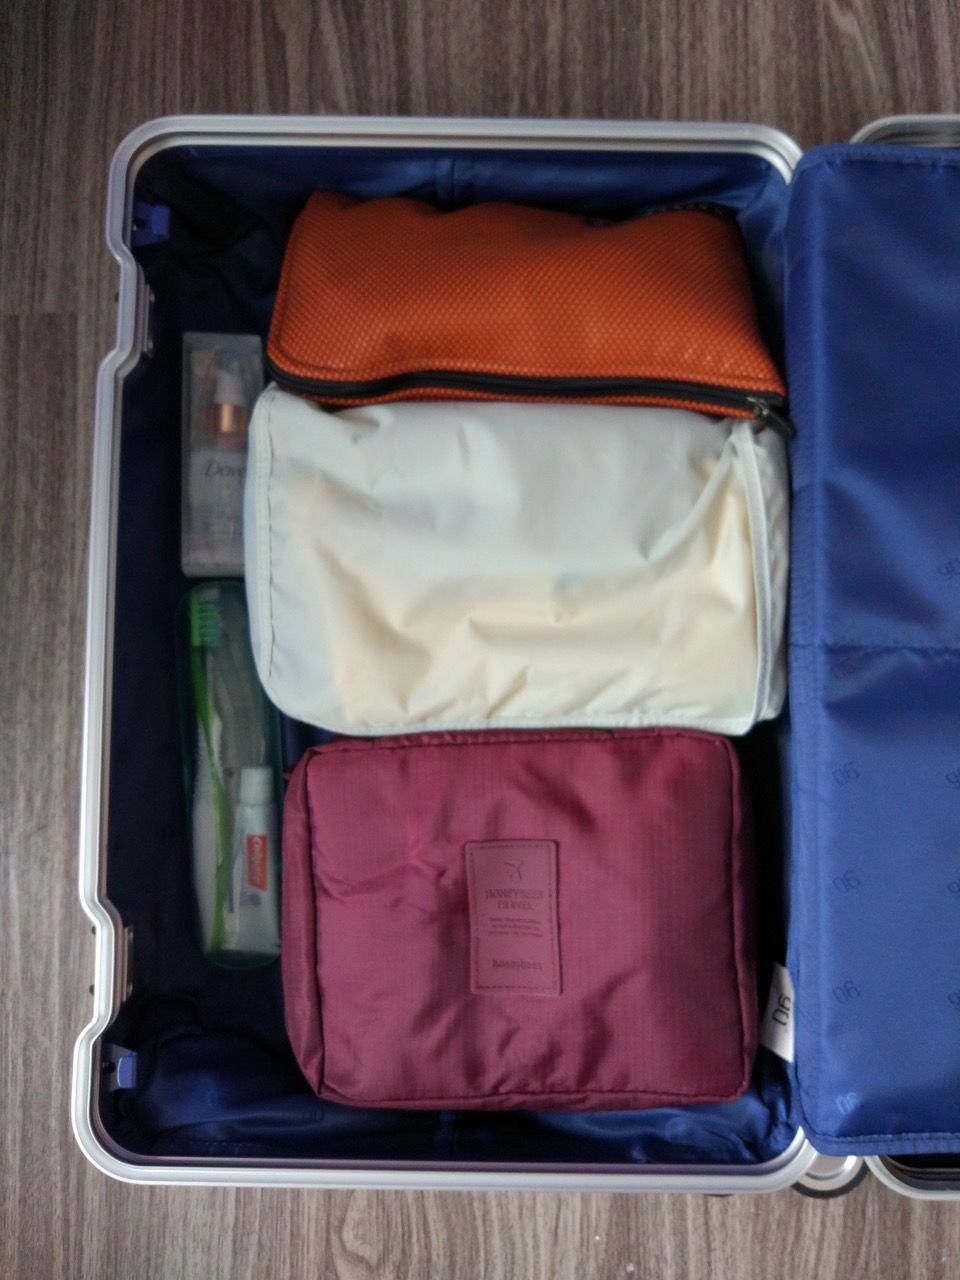 xiaomi-mi-90-smart-metal-luggage-suitcase-packed-right-compartment